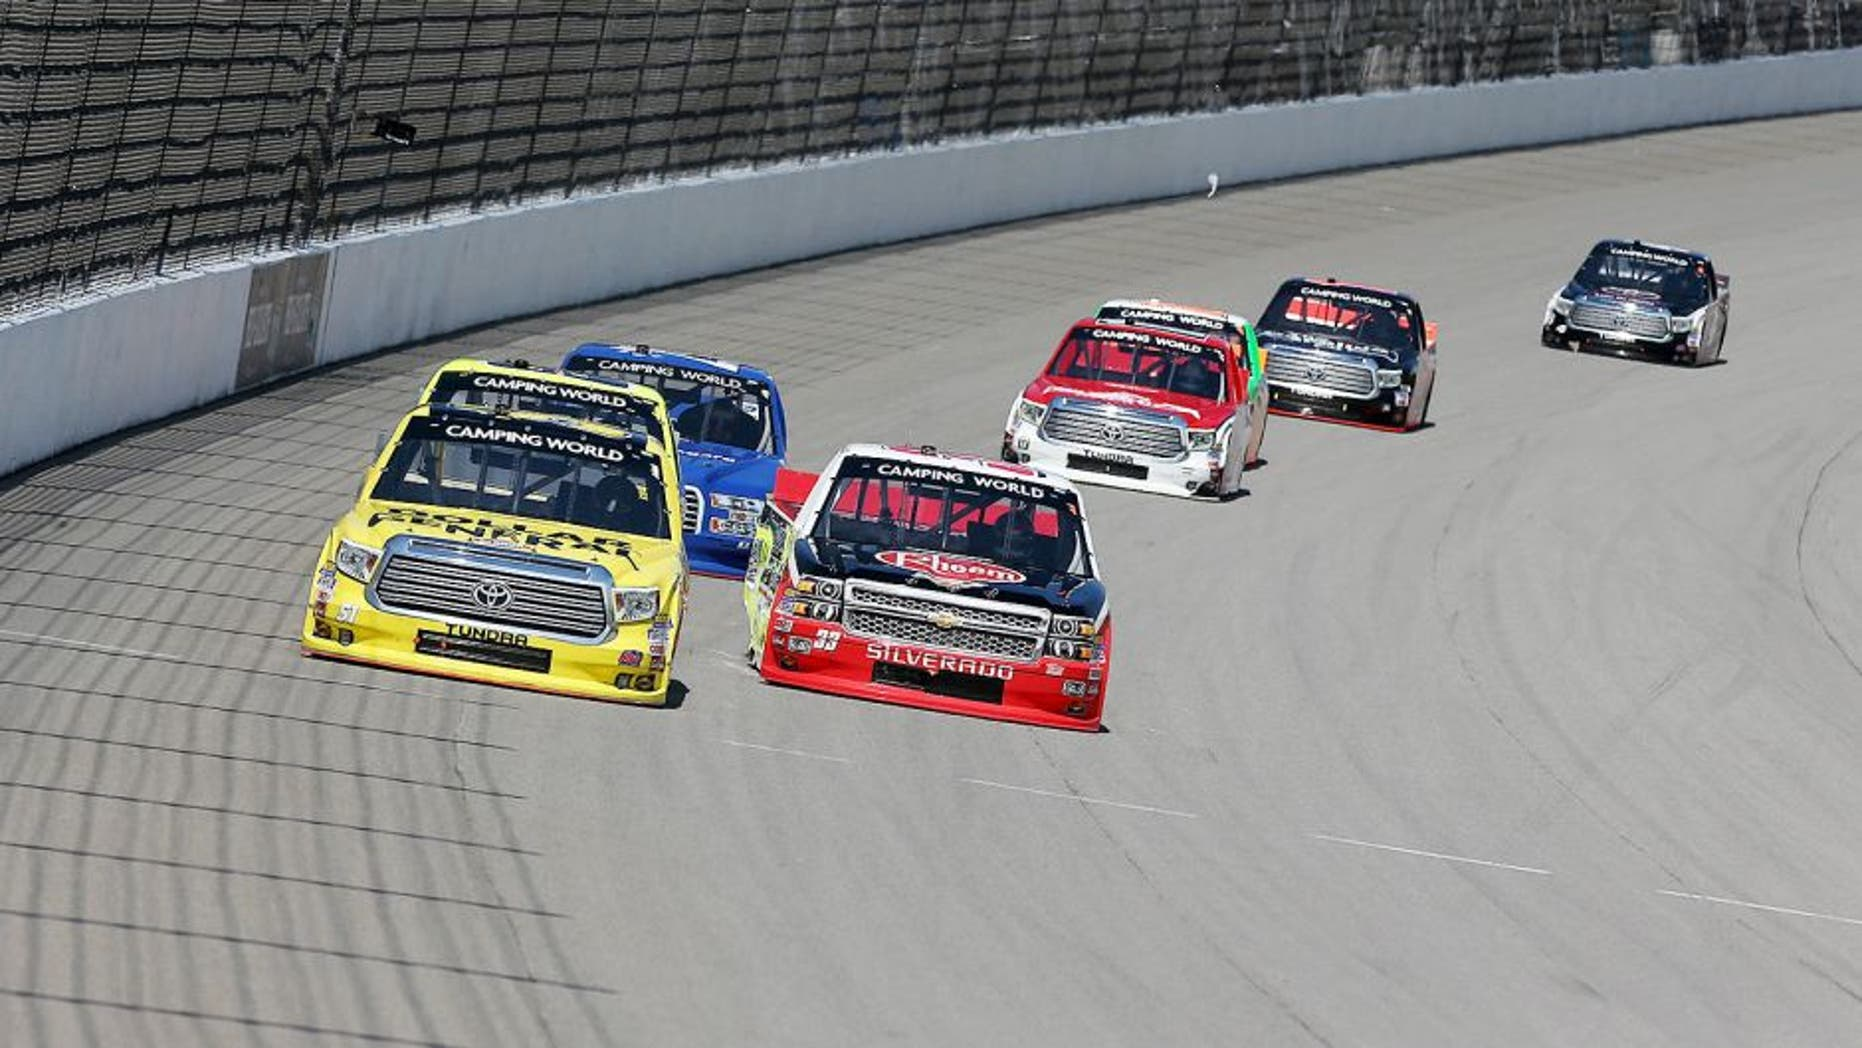 BROOKLYN, MI - AUGUST 15: Kyle Busch, driver of the #51 Dollar General Toyota, races Austin Dillon, driver of the #33 Rheem/Young Supply Company Chevrolet, during the NASCAR Camping World Truck Series Careers for Veterans 200 at Michigan International Speedway on August 15, 2015 in Brooklyn, Michigan. (Photo by Nick Laham/NASCAR via Getty Images)